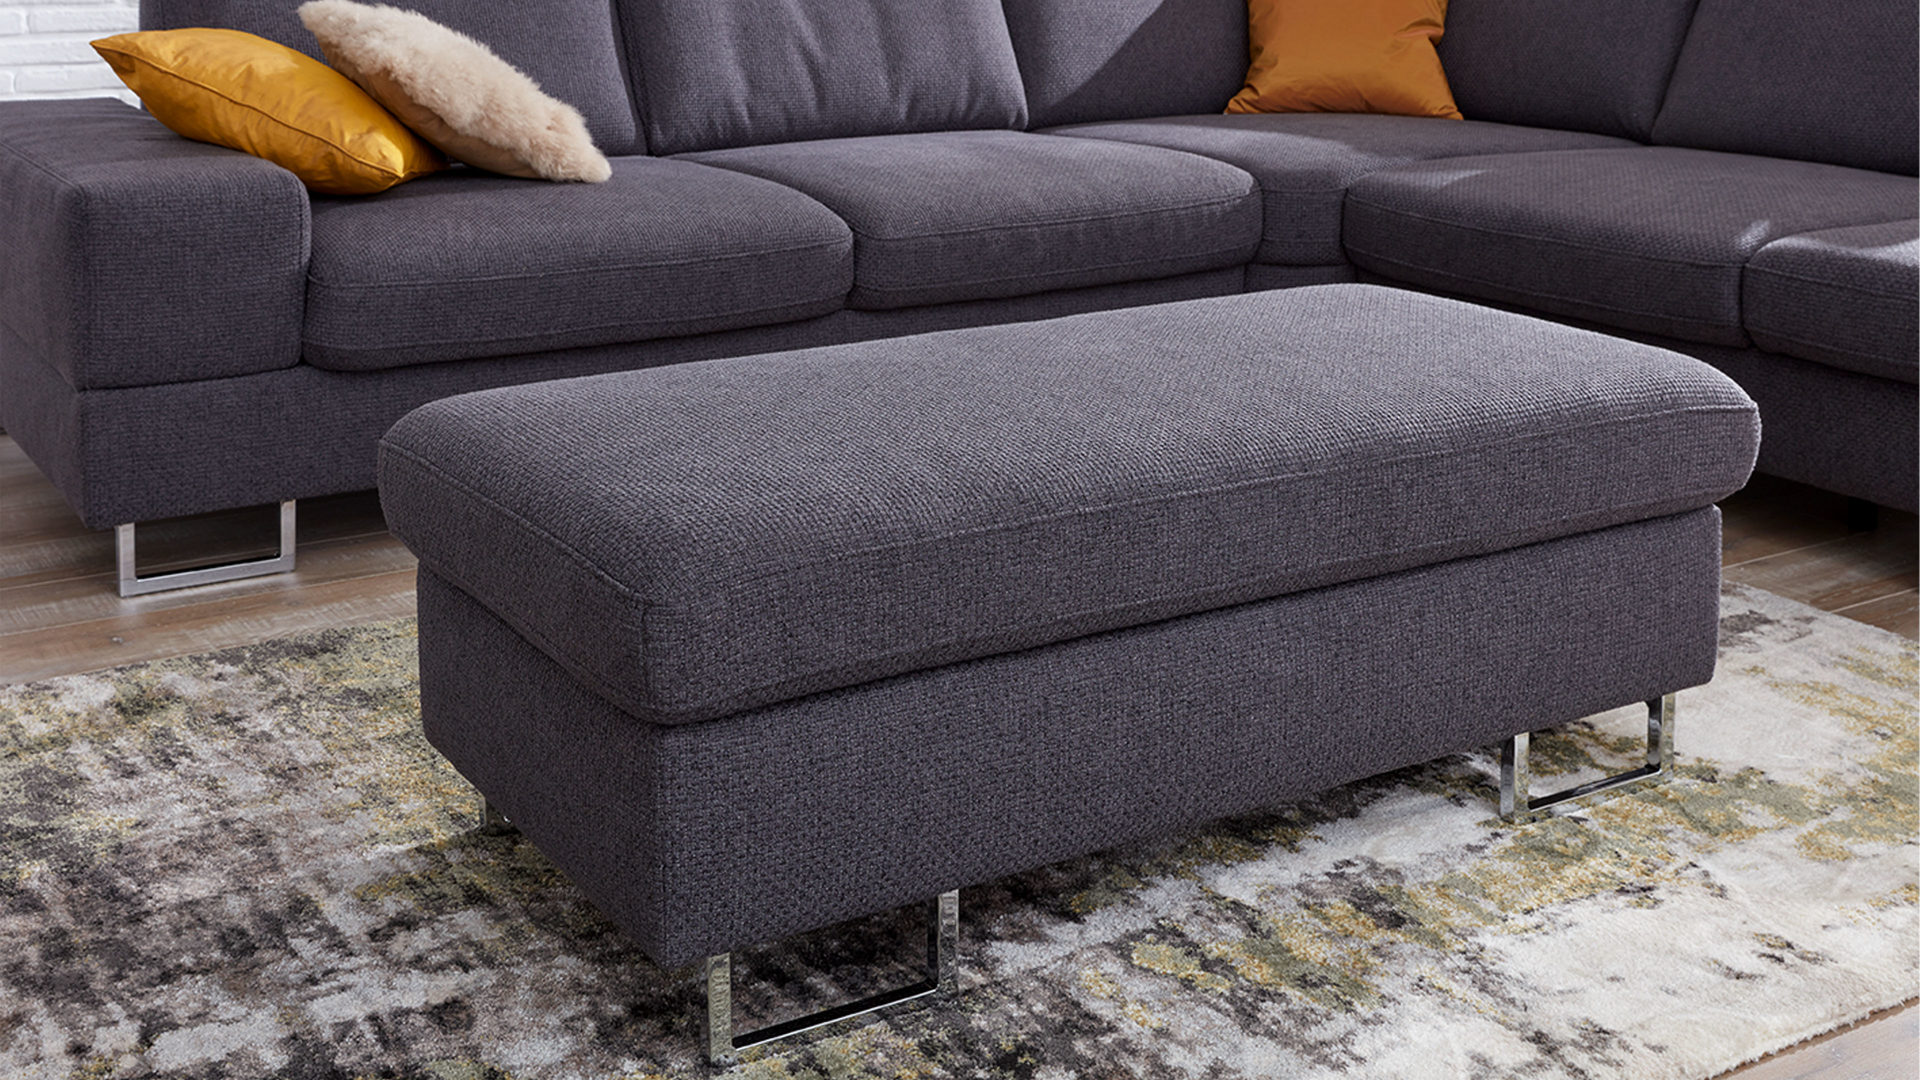 Polsterhocker Chrom Interliving Sofa Serie 4302 Polsterhocker Anthrazitfarbener